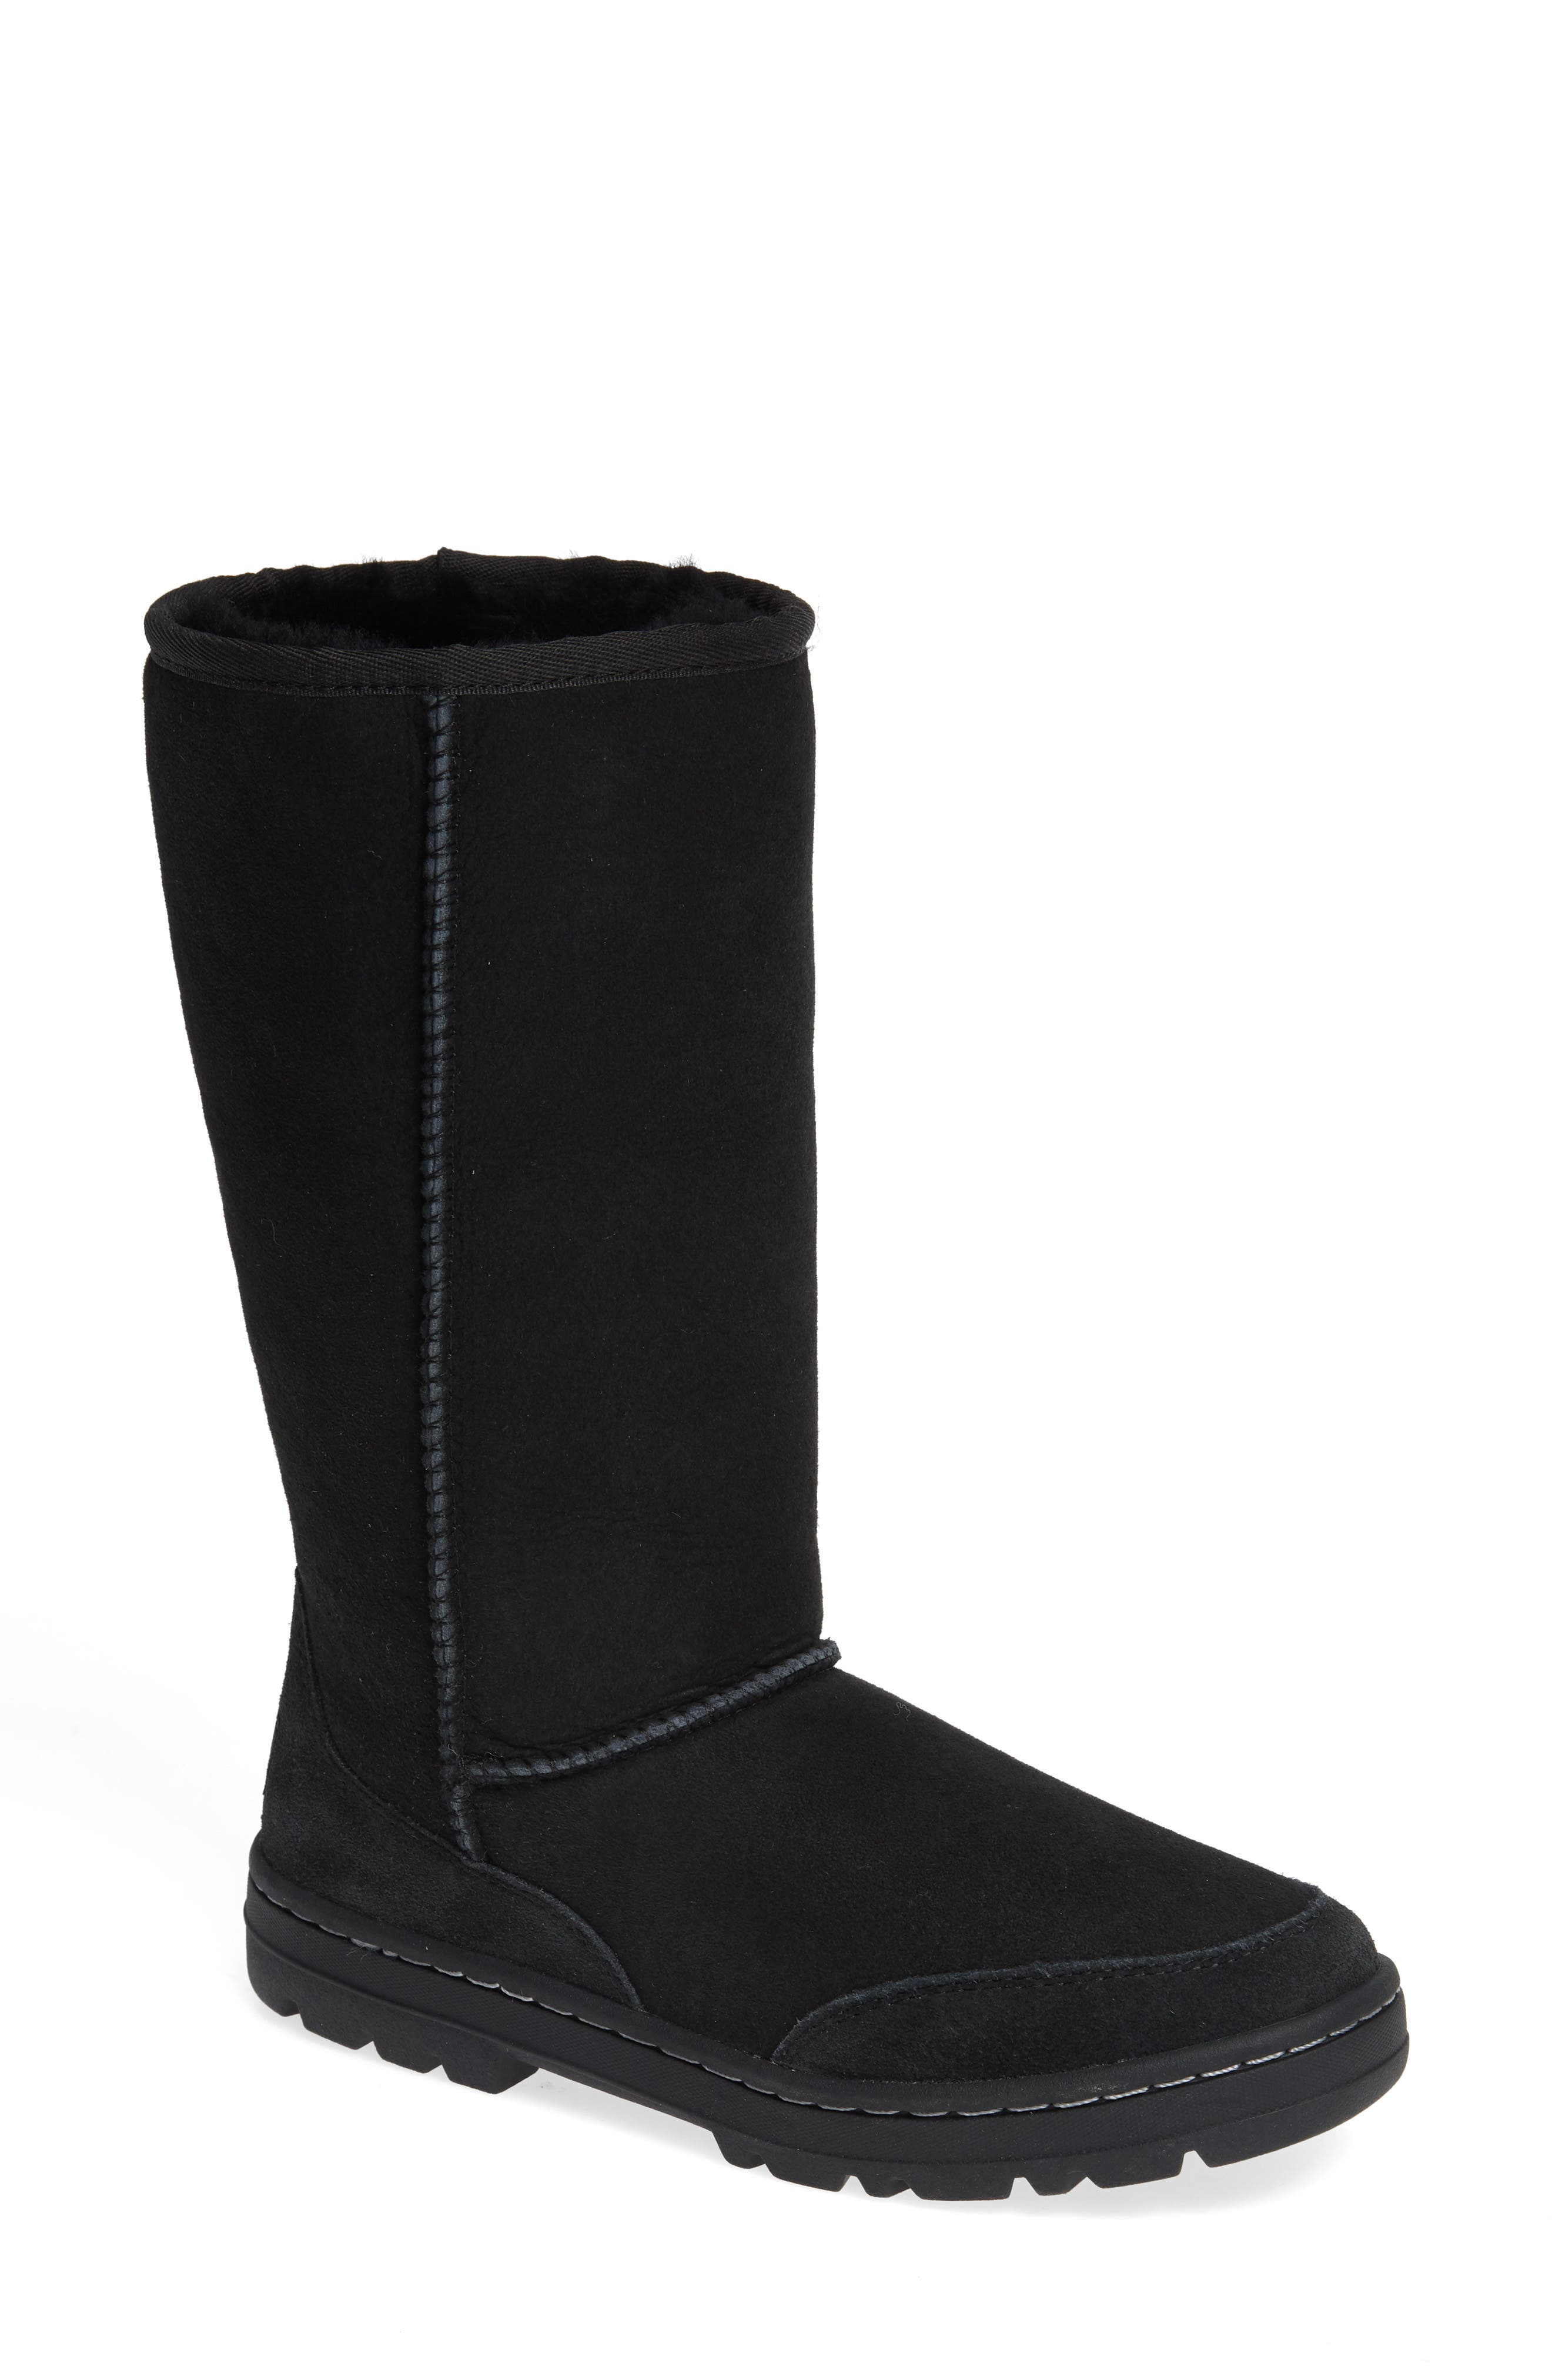 Ugg Ultra Revival Genuine Shearling Tall Boot in Black